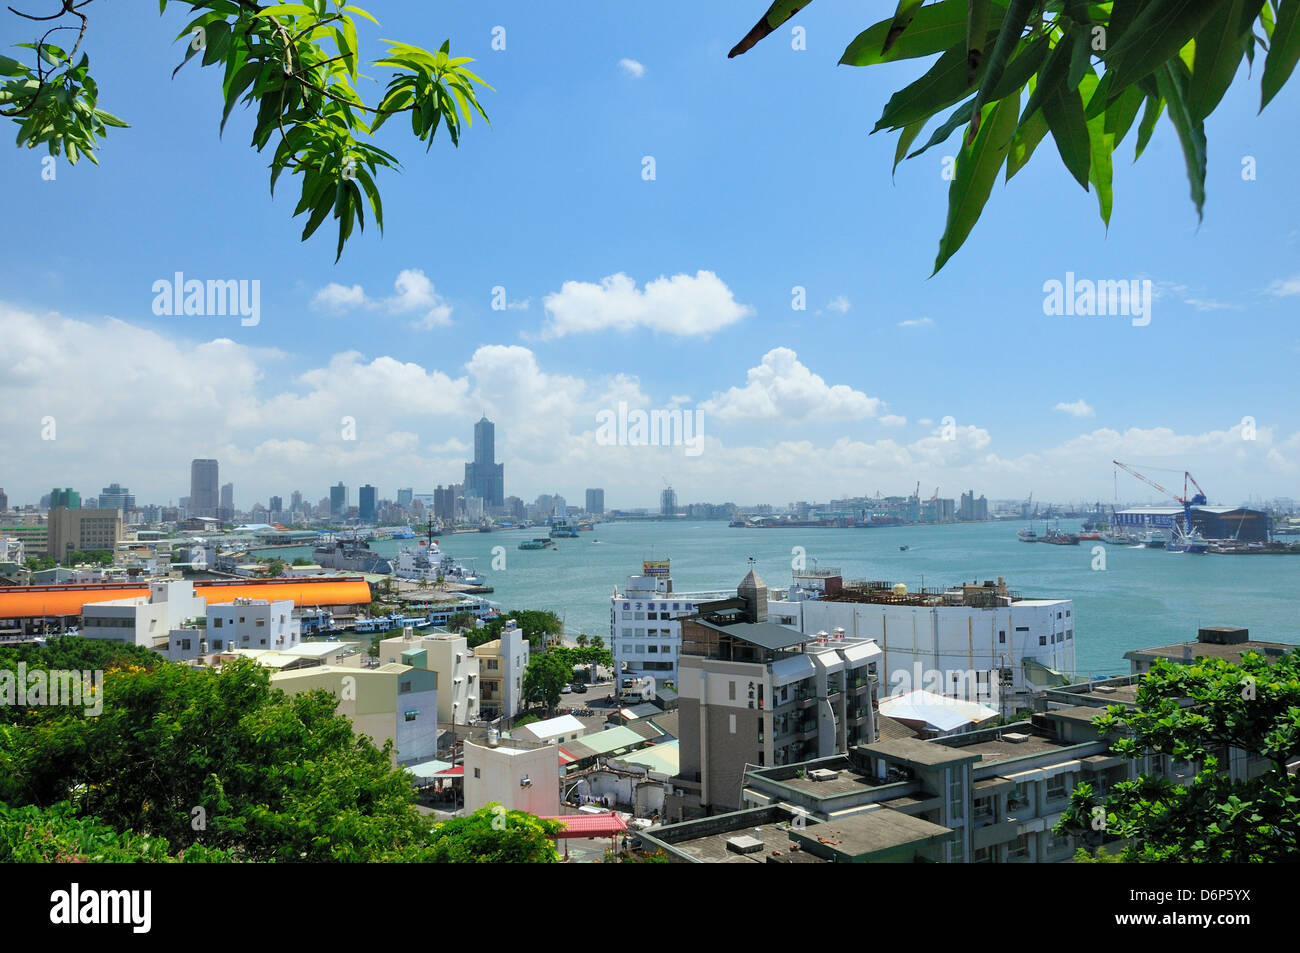 Overview of Kaohsiung harbour and the Love River urban canal, Kaohsiung City, Taiwan, Asia - Stock Image